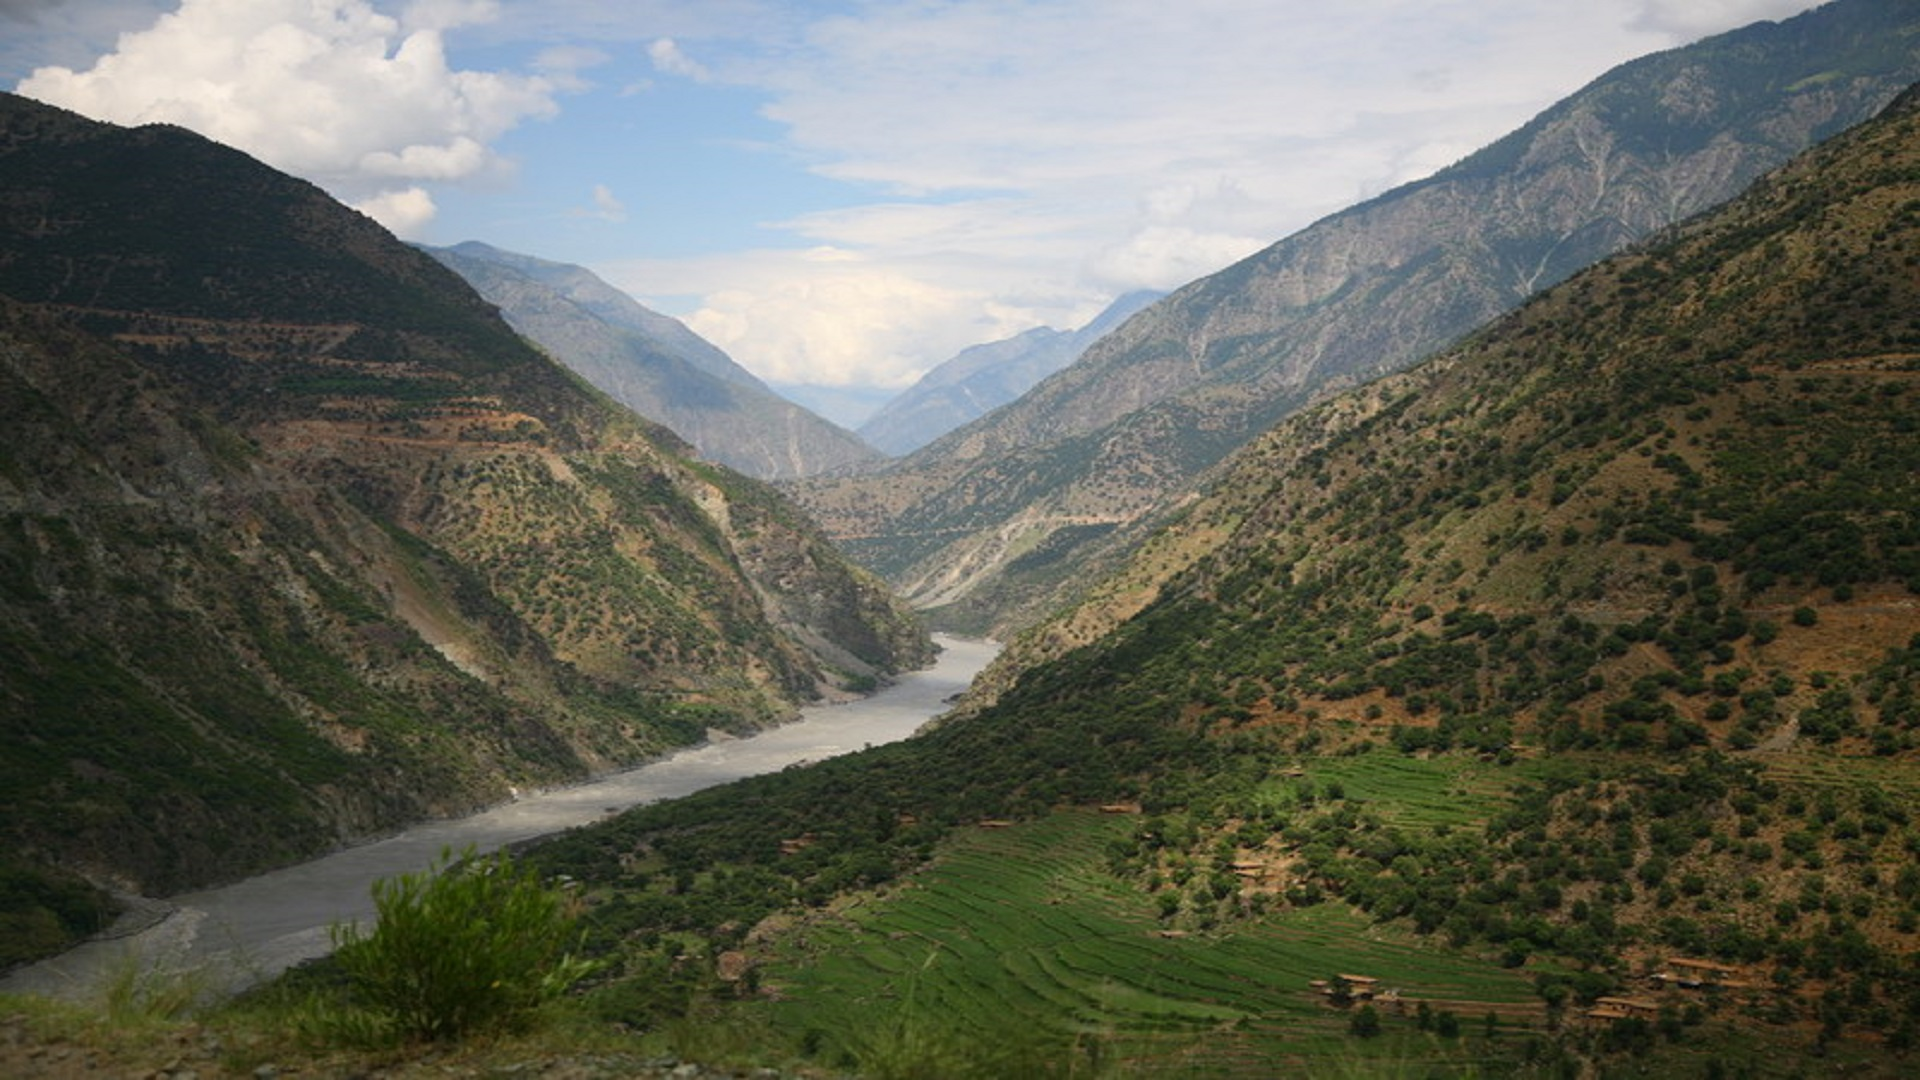 Sports Wallpapers Hd Indus River Free Hd Wallpapers Hd Wallpaper